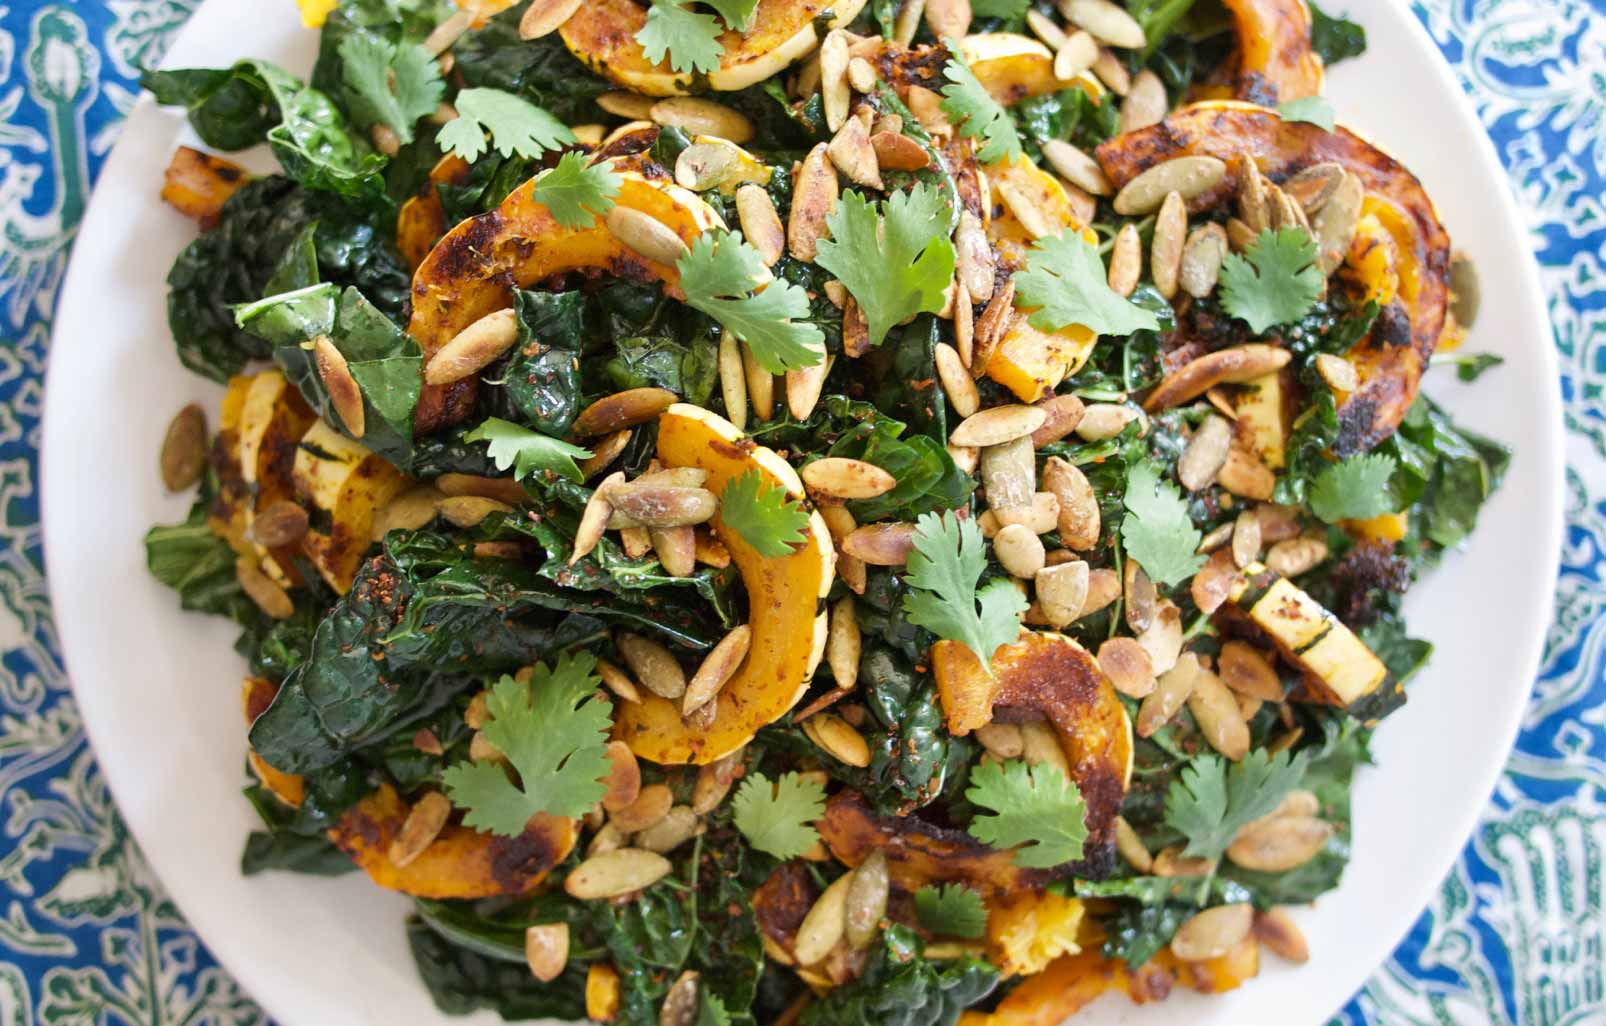 Miso-Harissa Roasted Delicata Squash and Kale Salad